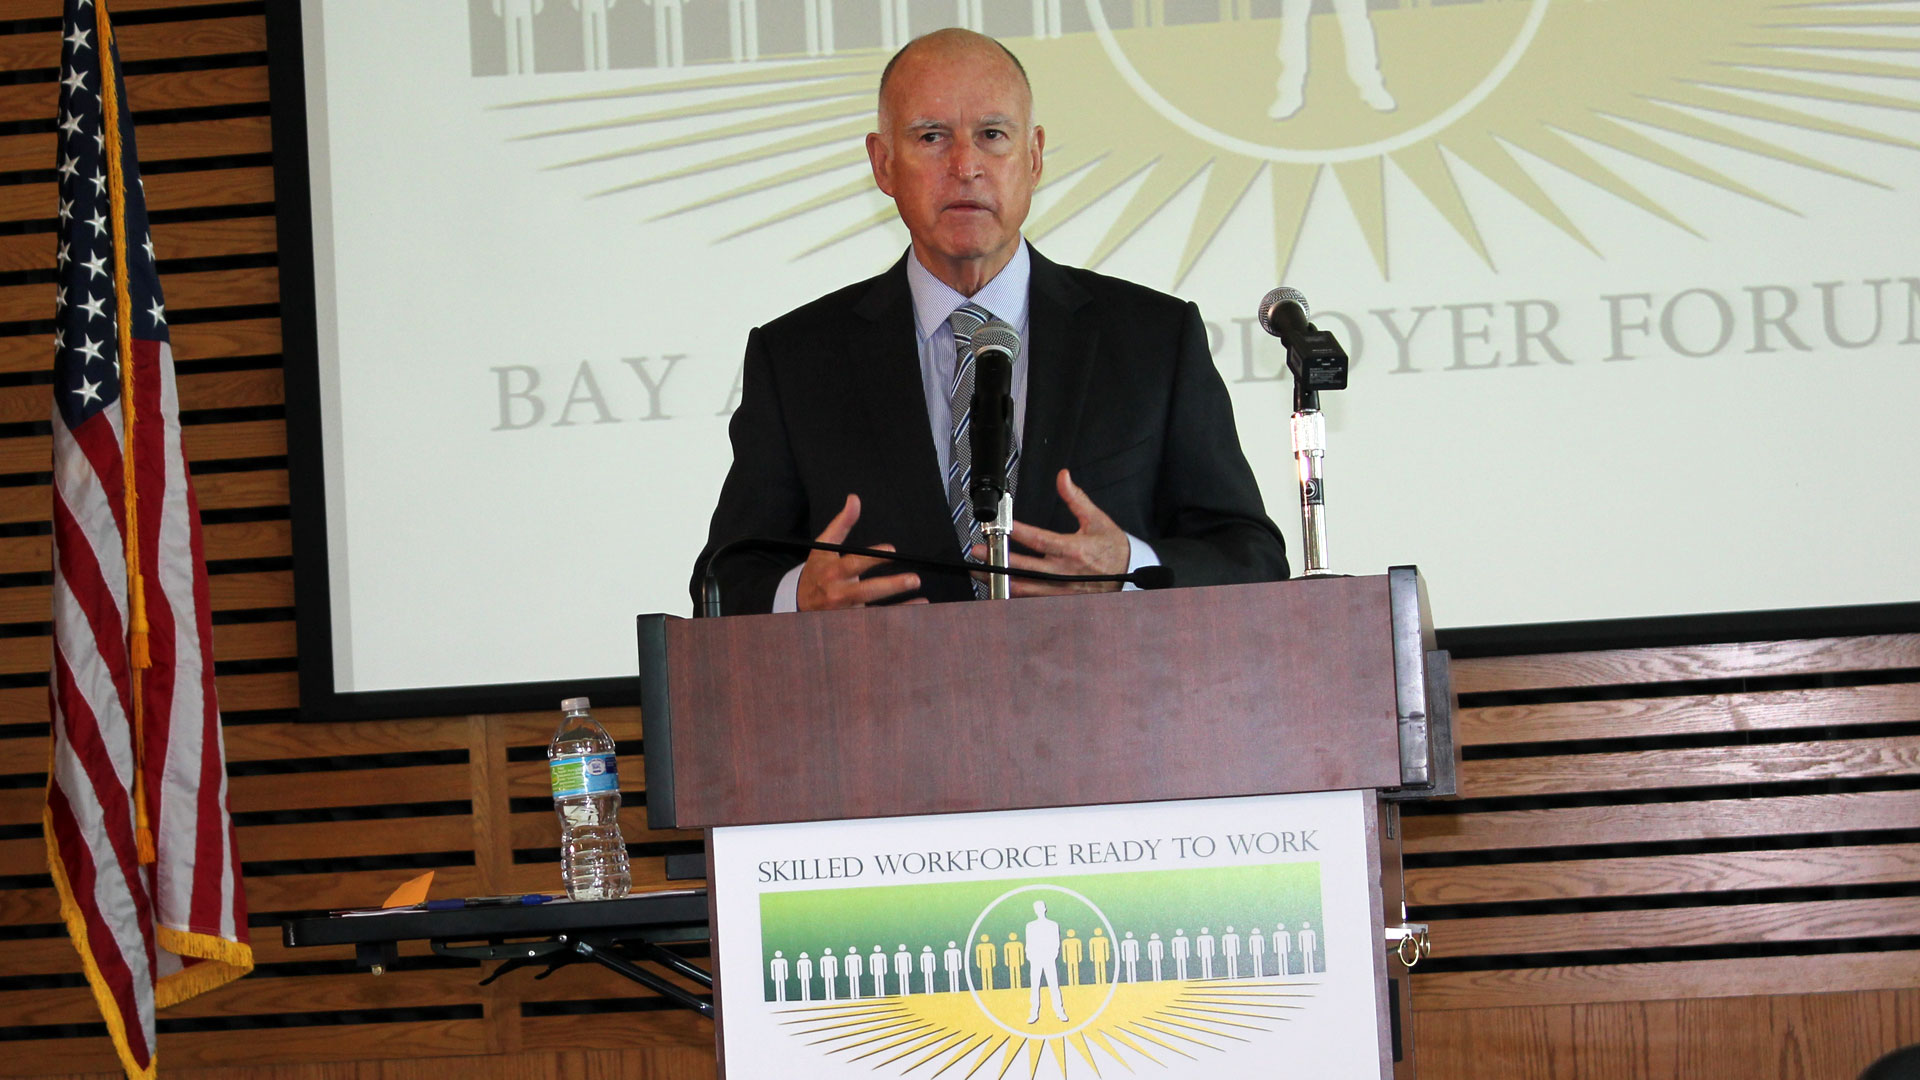 Gov. Jerry Brown spoke at a politician-studded Friday forum for employers at Oakland's Merritt College.